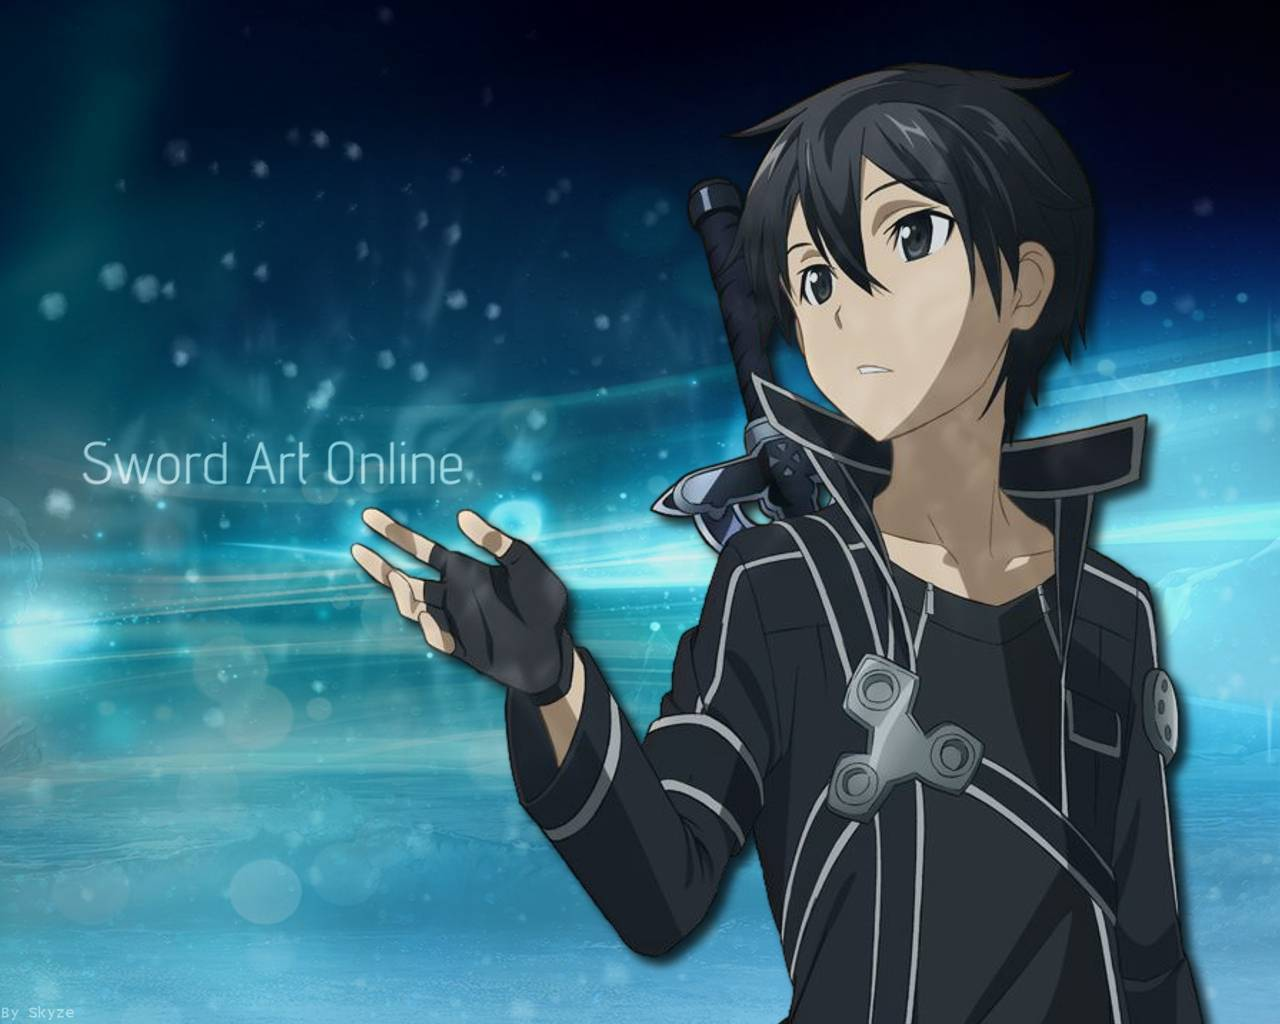 The Good, The Bad, And What The?: Klein From Sword Art ...